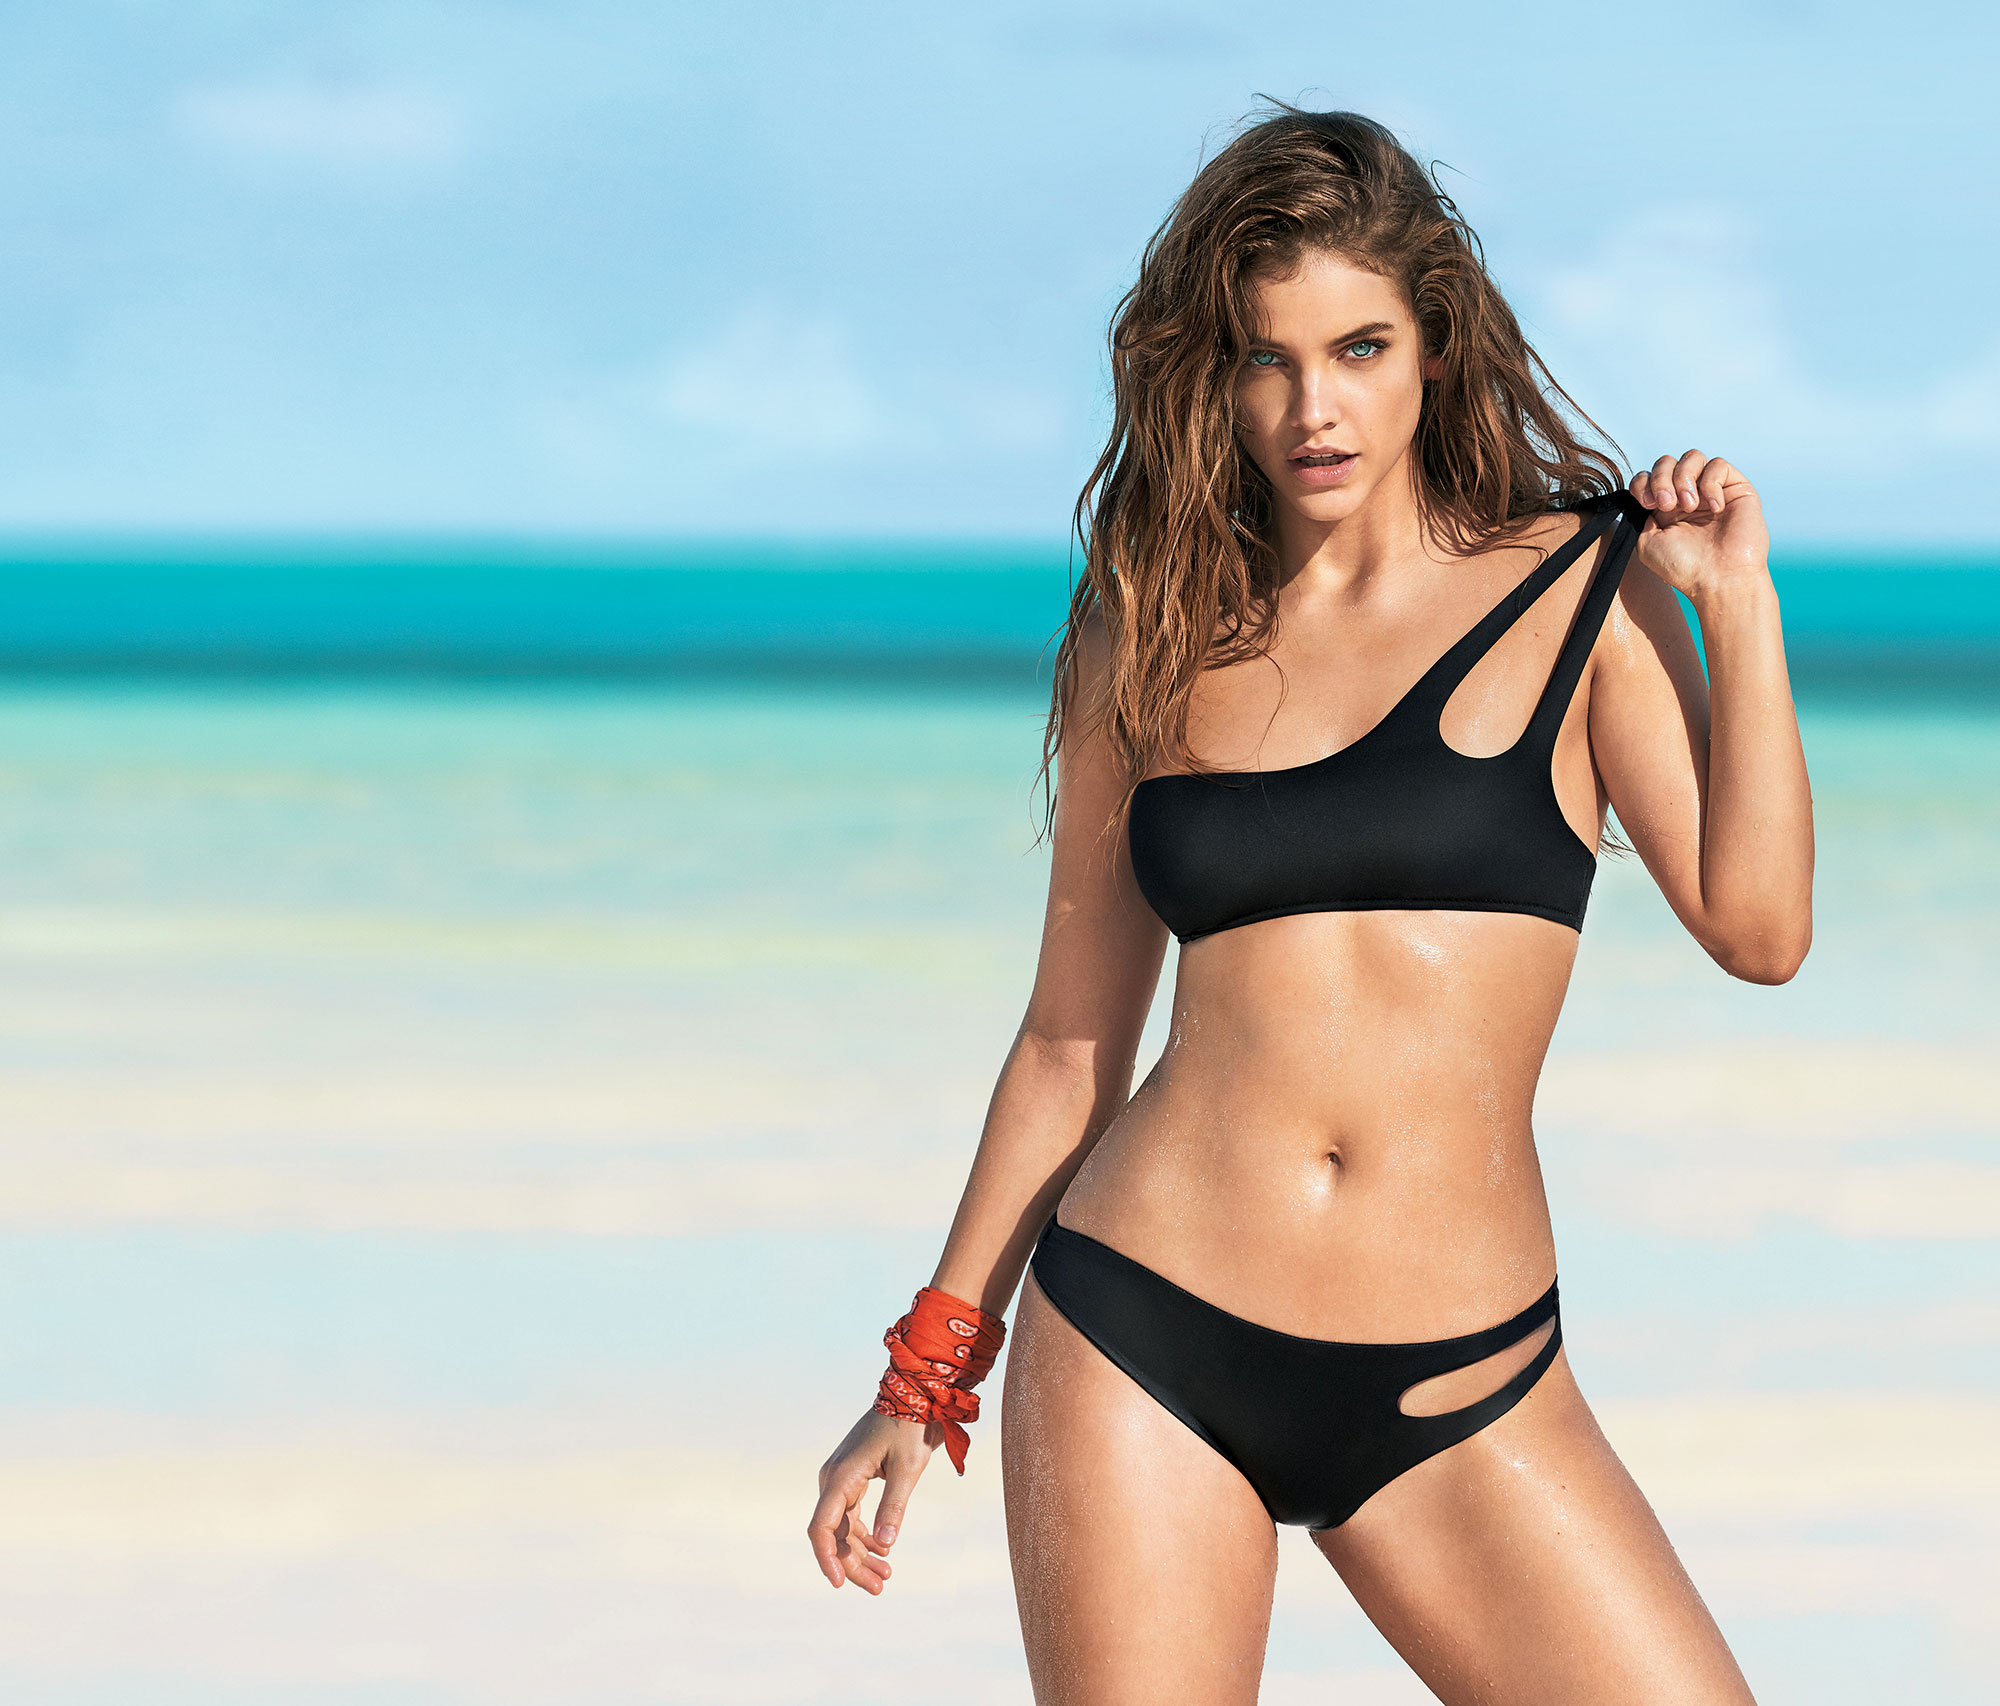 Barbara Palvin Calzedonia Swim beach - There's nothing boring about this all-black-everything cut-out top ($50, us.calzedonia.com ) and bottom ($35, us.calzedonia.com ).